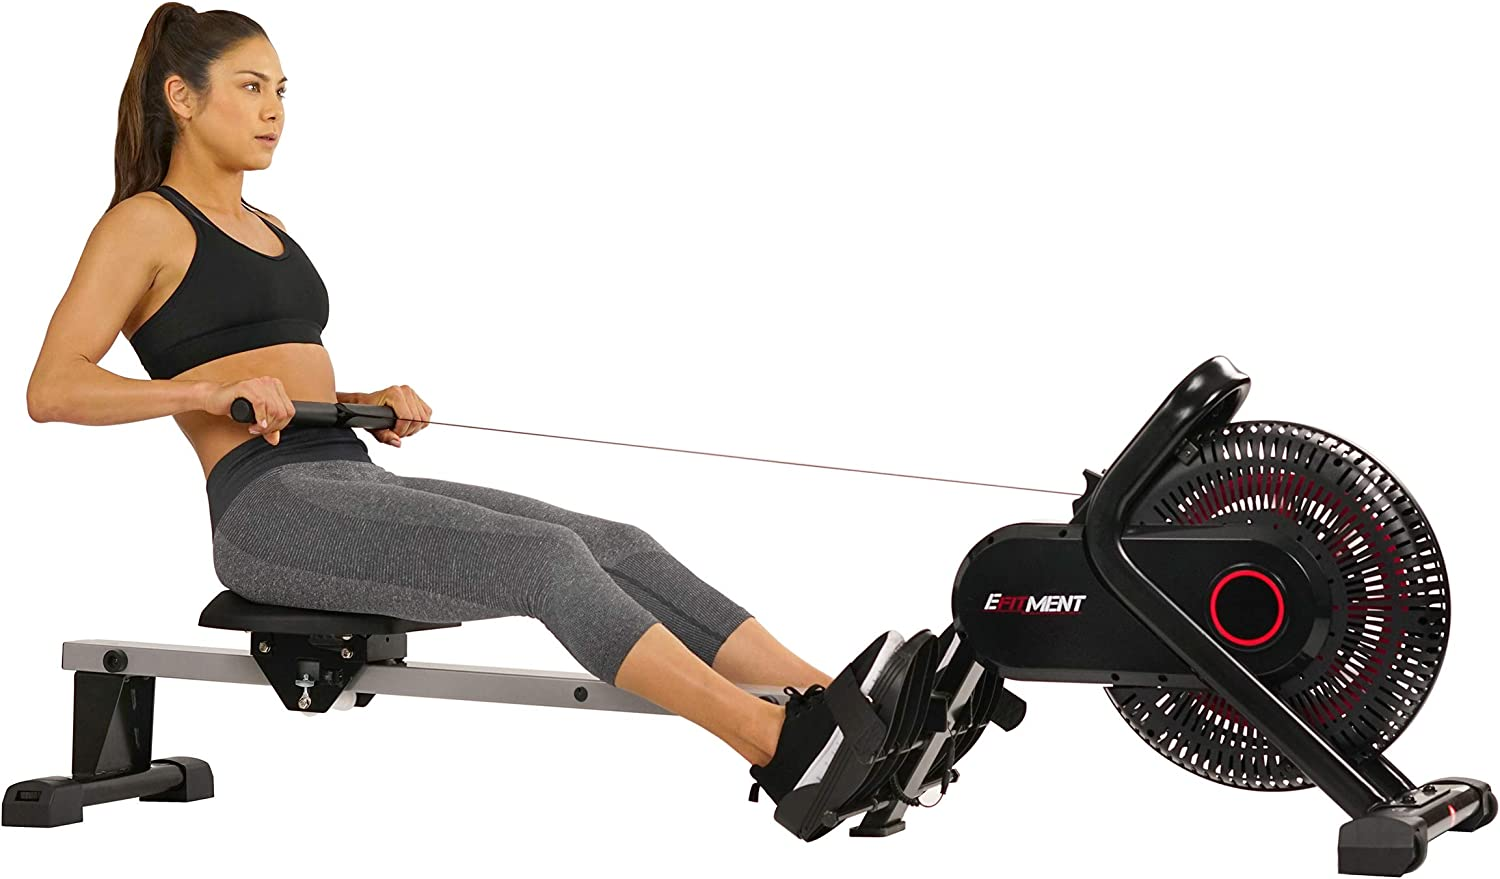 EFITMENT Aero Air Fan Rowing Machine Rower w LCD Monitor, 245 LB Weight Capacity, 51 Inch Rail Length – RW036